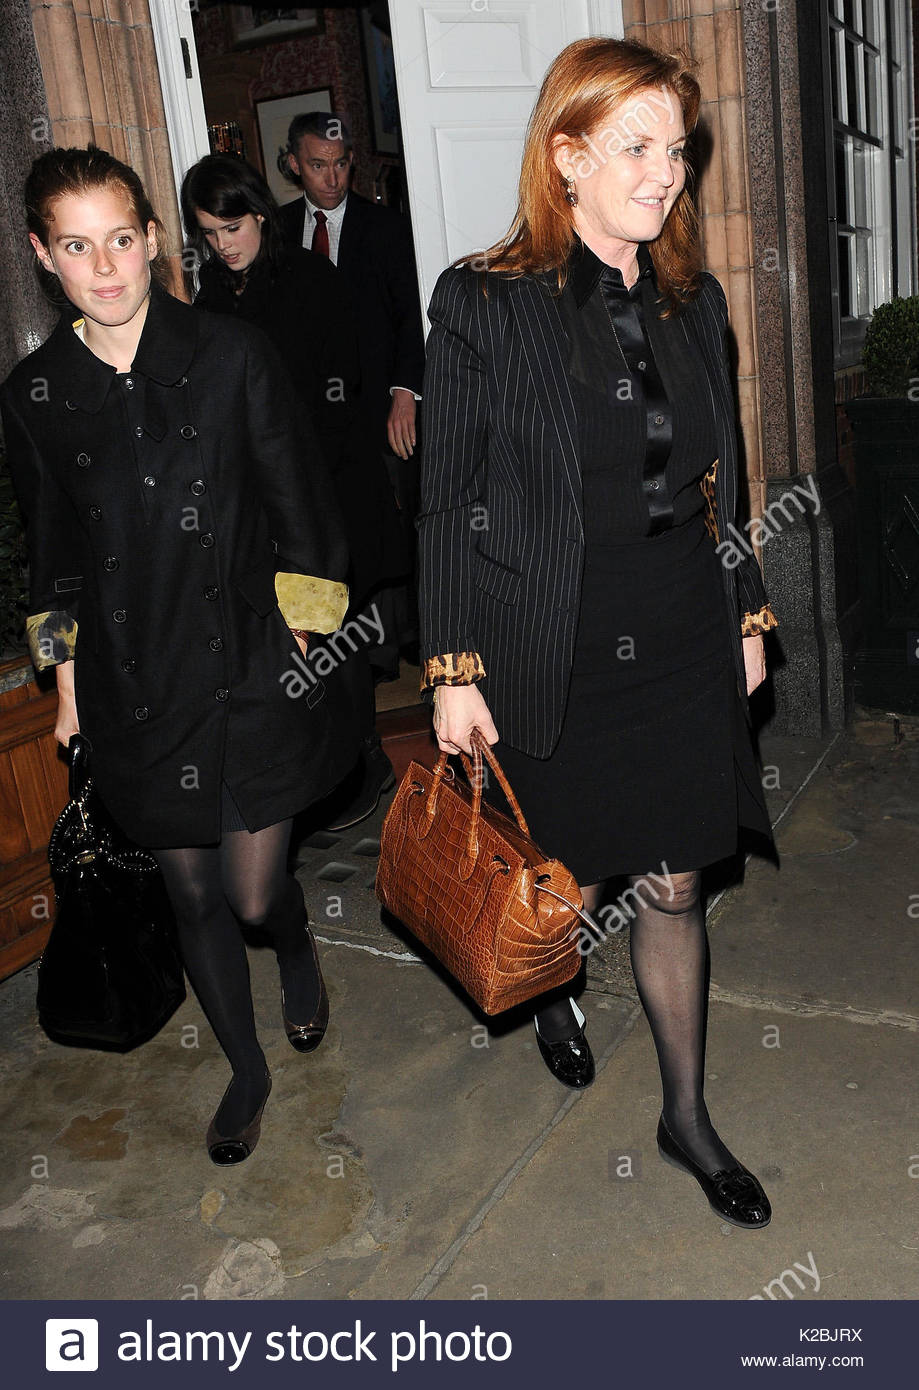 Princess Beatrice And Eugenie Of York Stock Photos